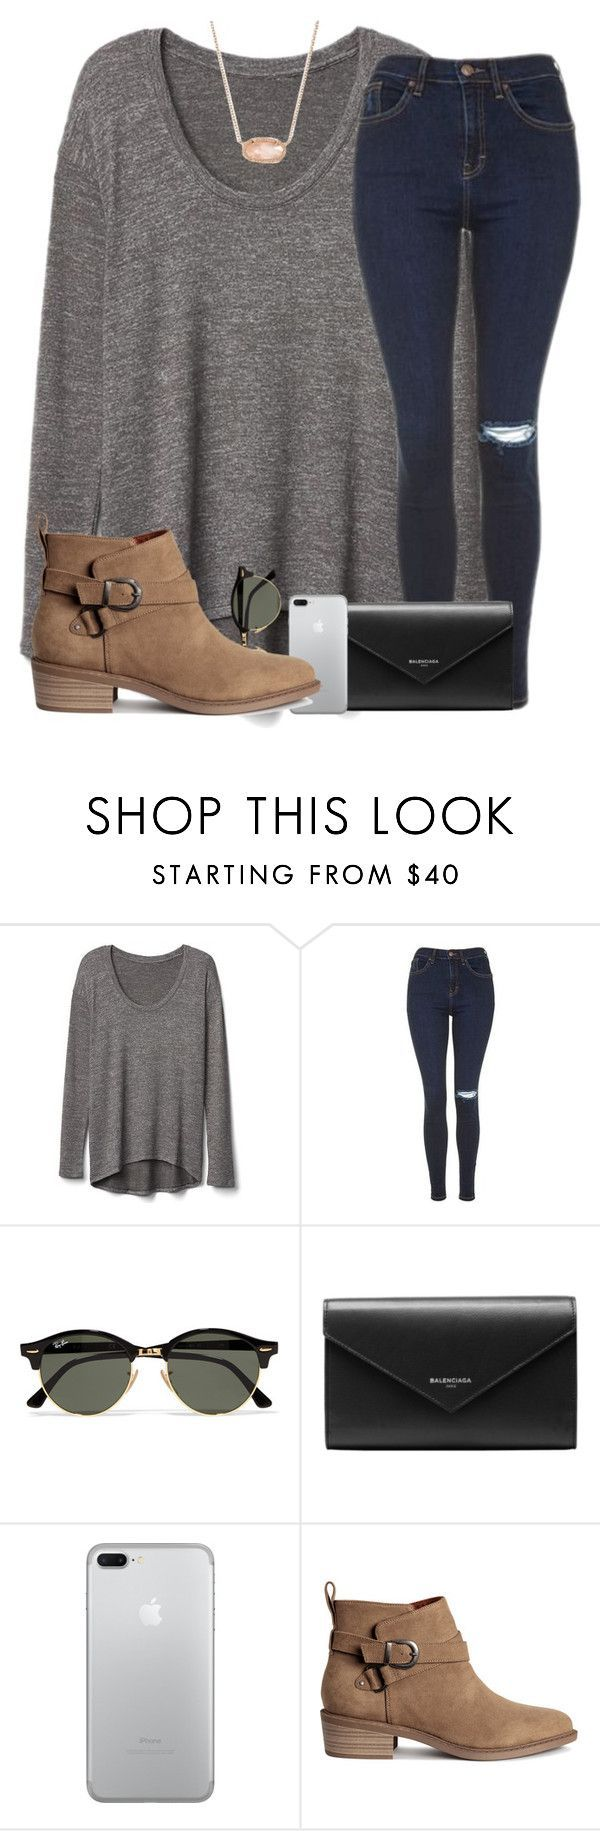 Long sleeve grey tee and brown booties outfit featuring Gap, Topshop, Ray-Ban, Balenciaga, H&M and Kendra Scott